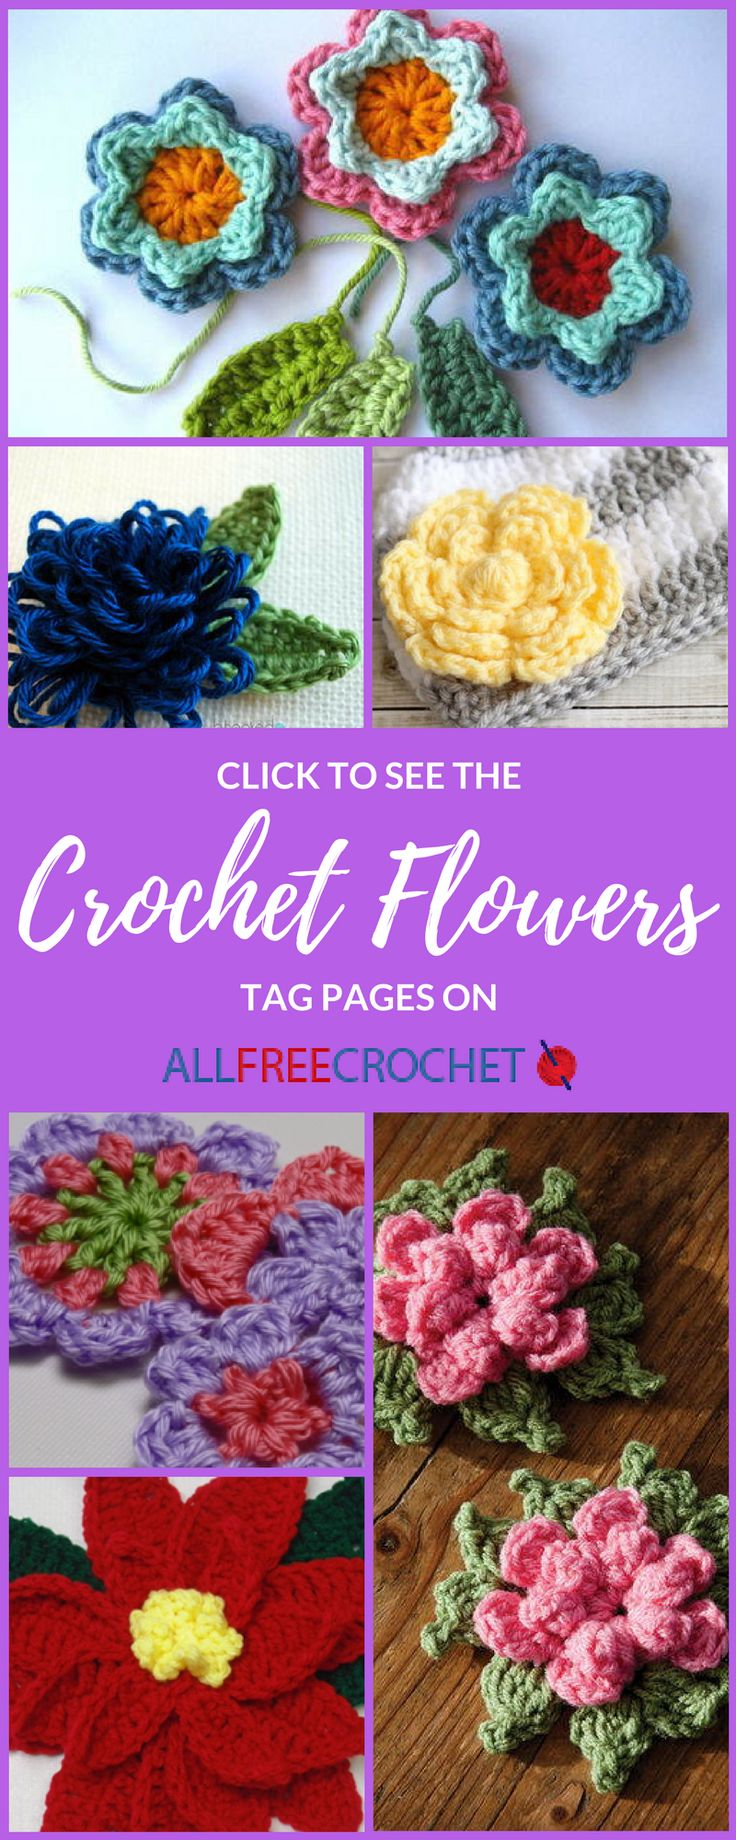 109 best crochet flower patterns images on pinterest knit learn how to crochet flowers and find crochet flower patterns at allfreecrochet bankloansurffo Images